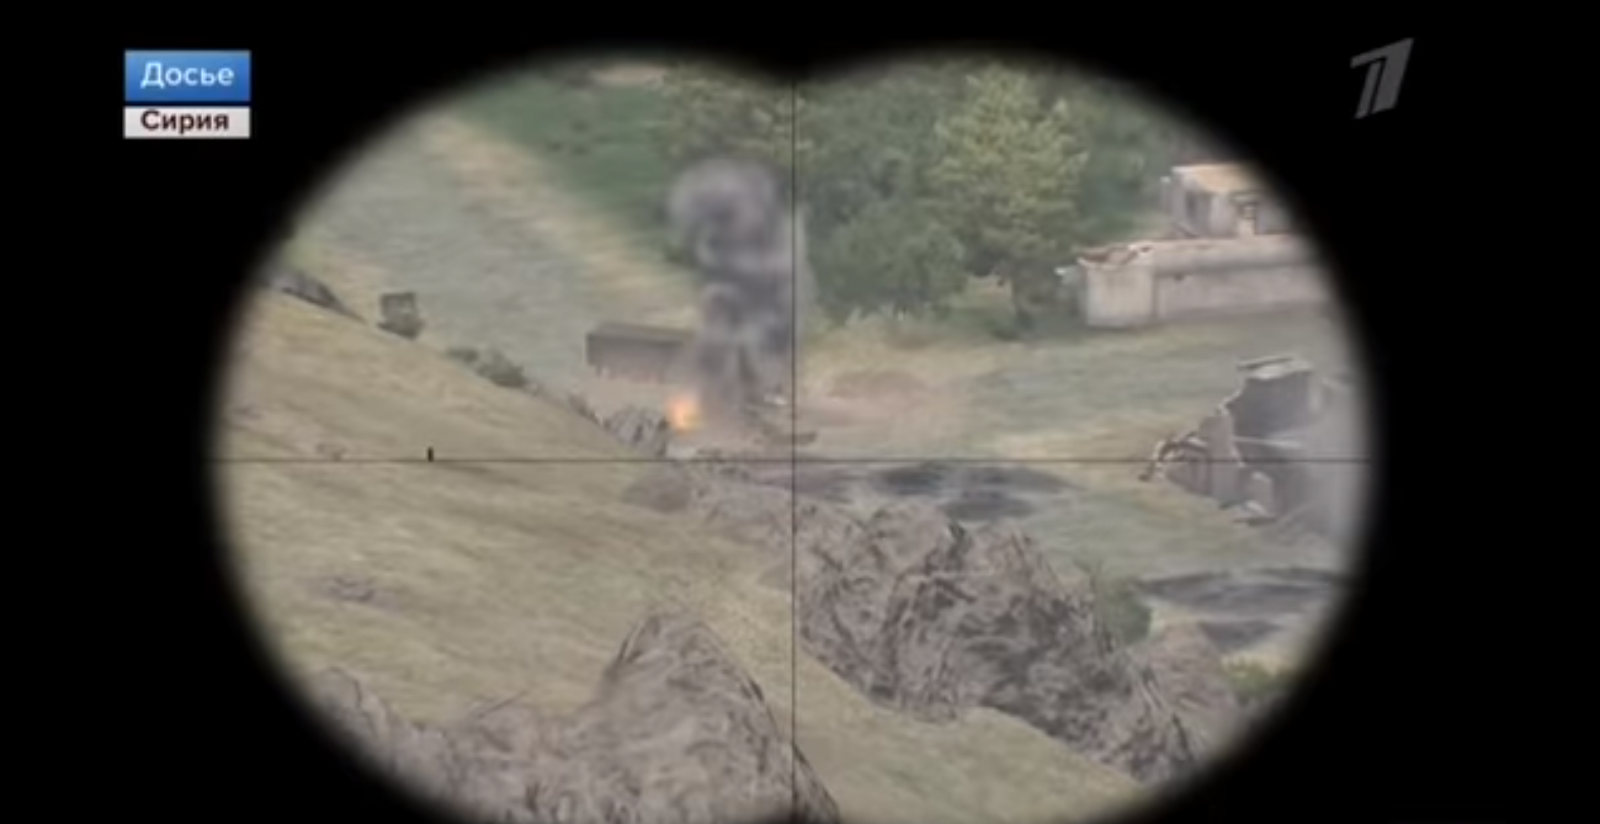 Russian TV Program Uses Arma 3 Gameplay In Segment Celebrating Armed Forces